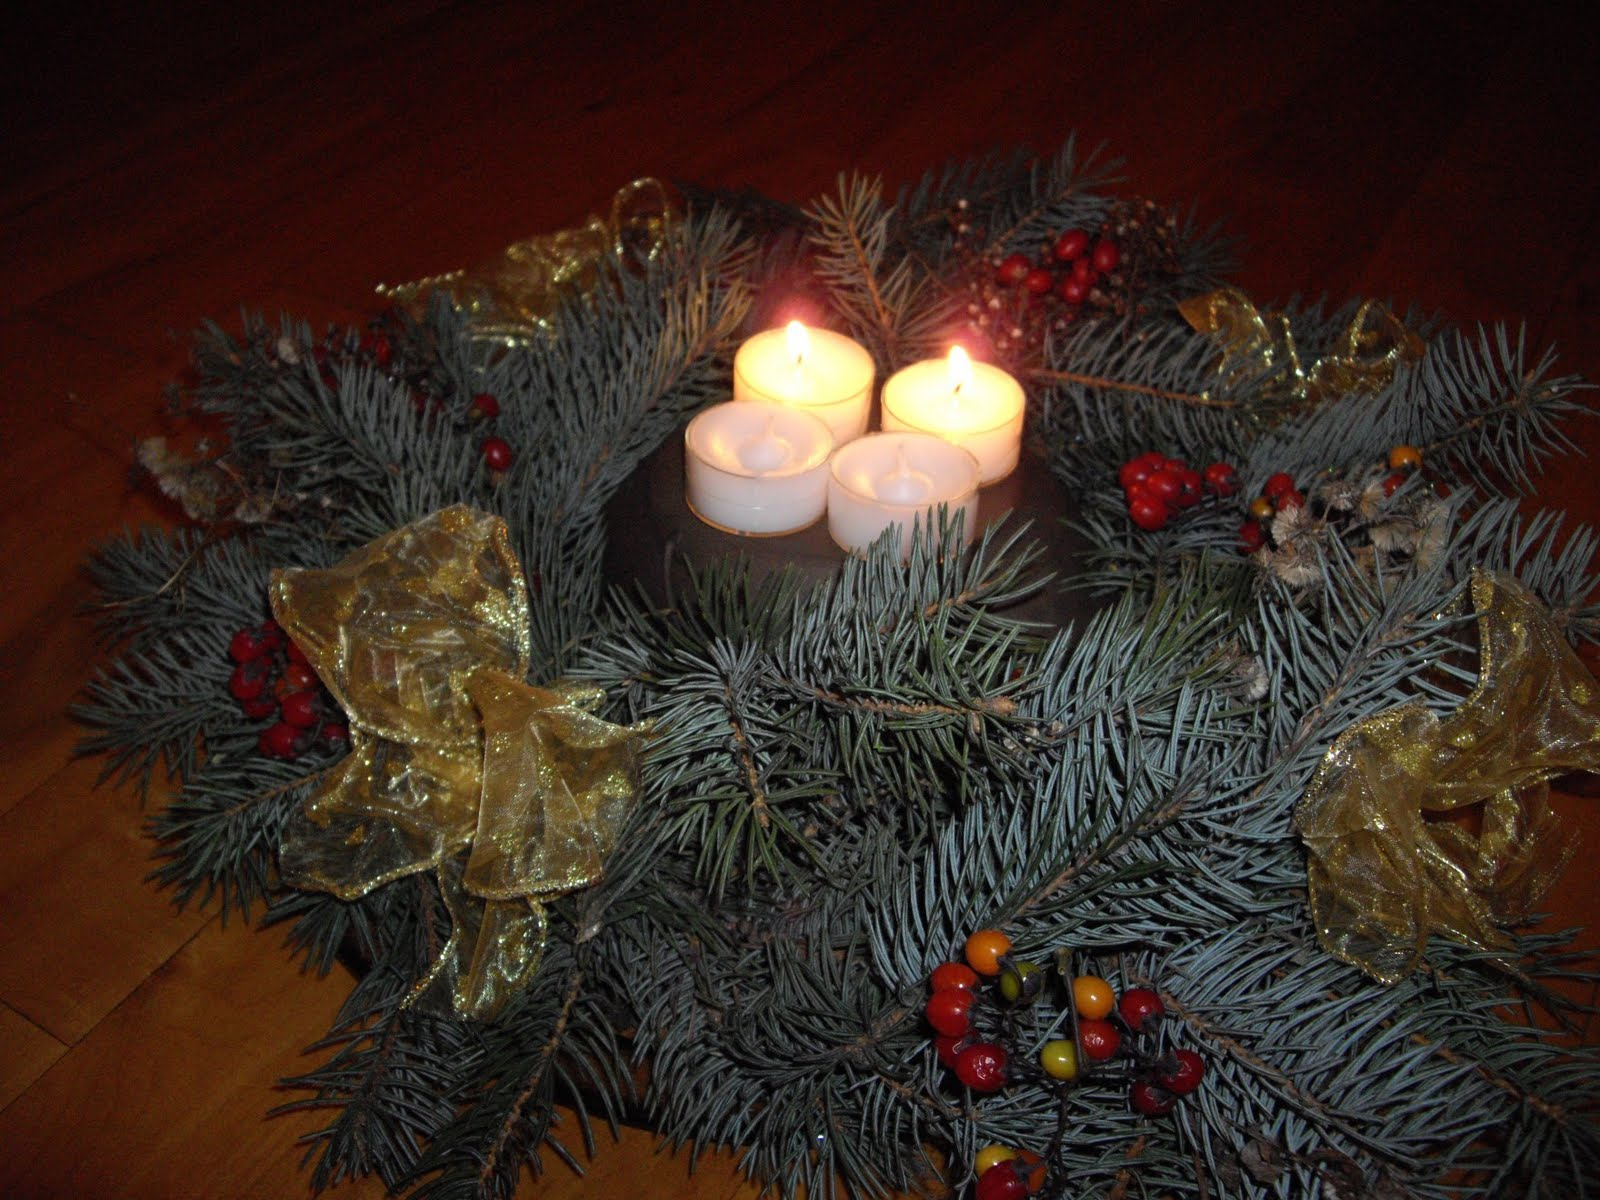 Ive Been Told That Advent Wreaths Are A Catholic Tradition In Many Countries But Latvia Everyone Pretty Much Just Gets Them Regardless Of Their